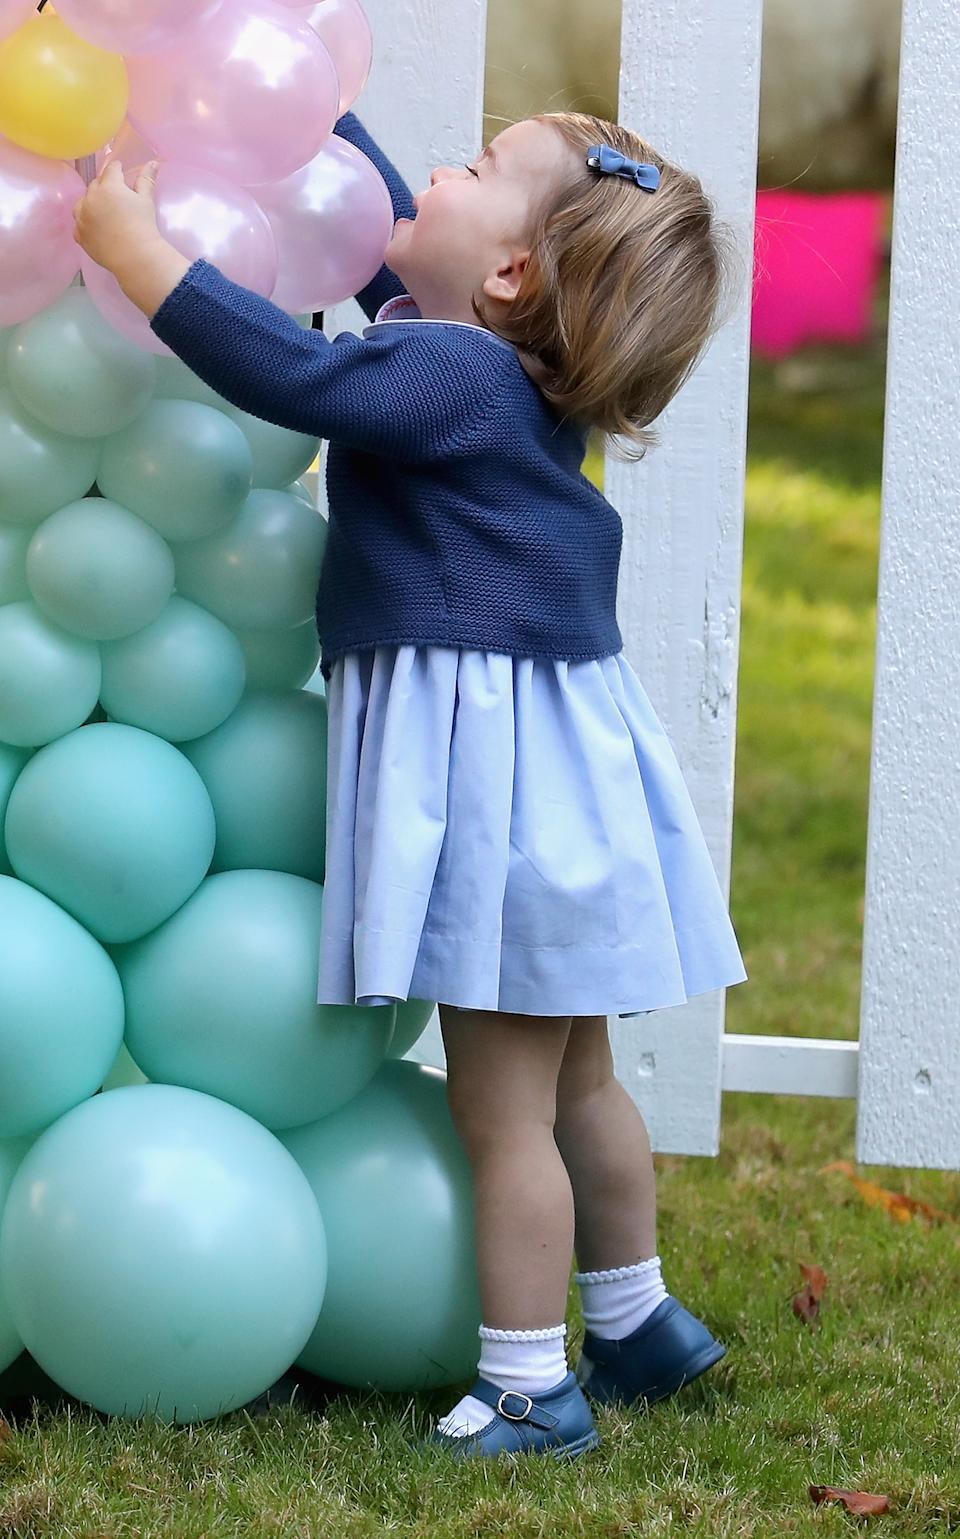 <p>There was a lot going on at this children's party during the 2016 royal tour to Canada, but Charlotte discovering balloons has got to be a highlight. (Chris Jackson - Pool/Getty Images)</p>